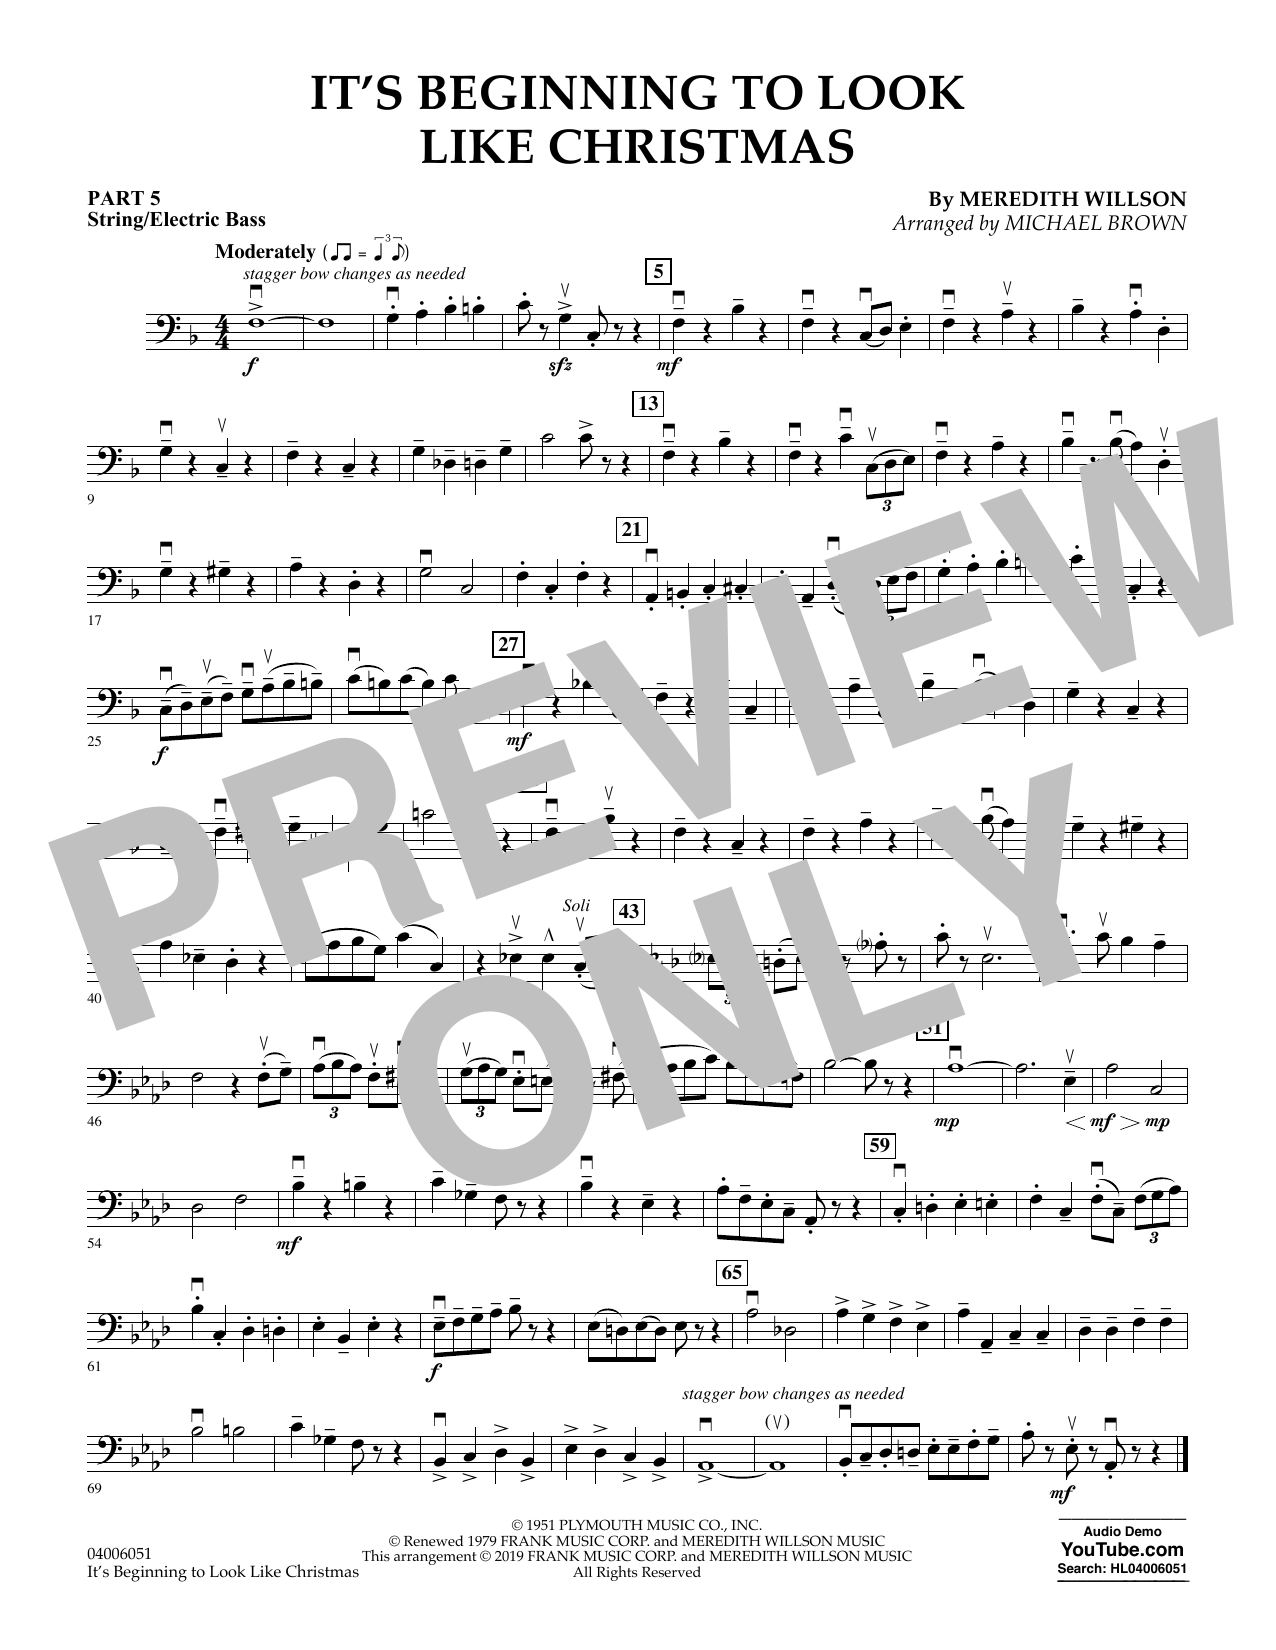 It's Beginning to Look Like Christmas (arr. Michael Brown) - Pt.5 - String/Electric Bass (Concert Band: Flex-Band)